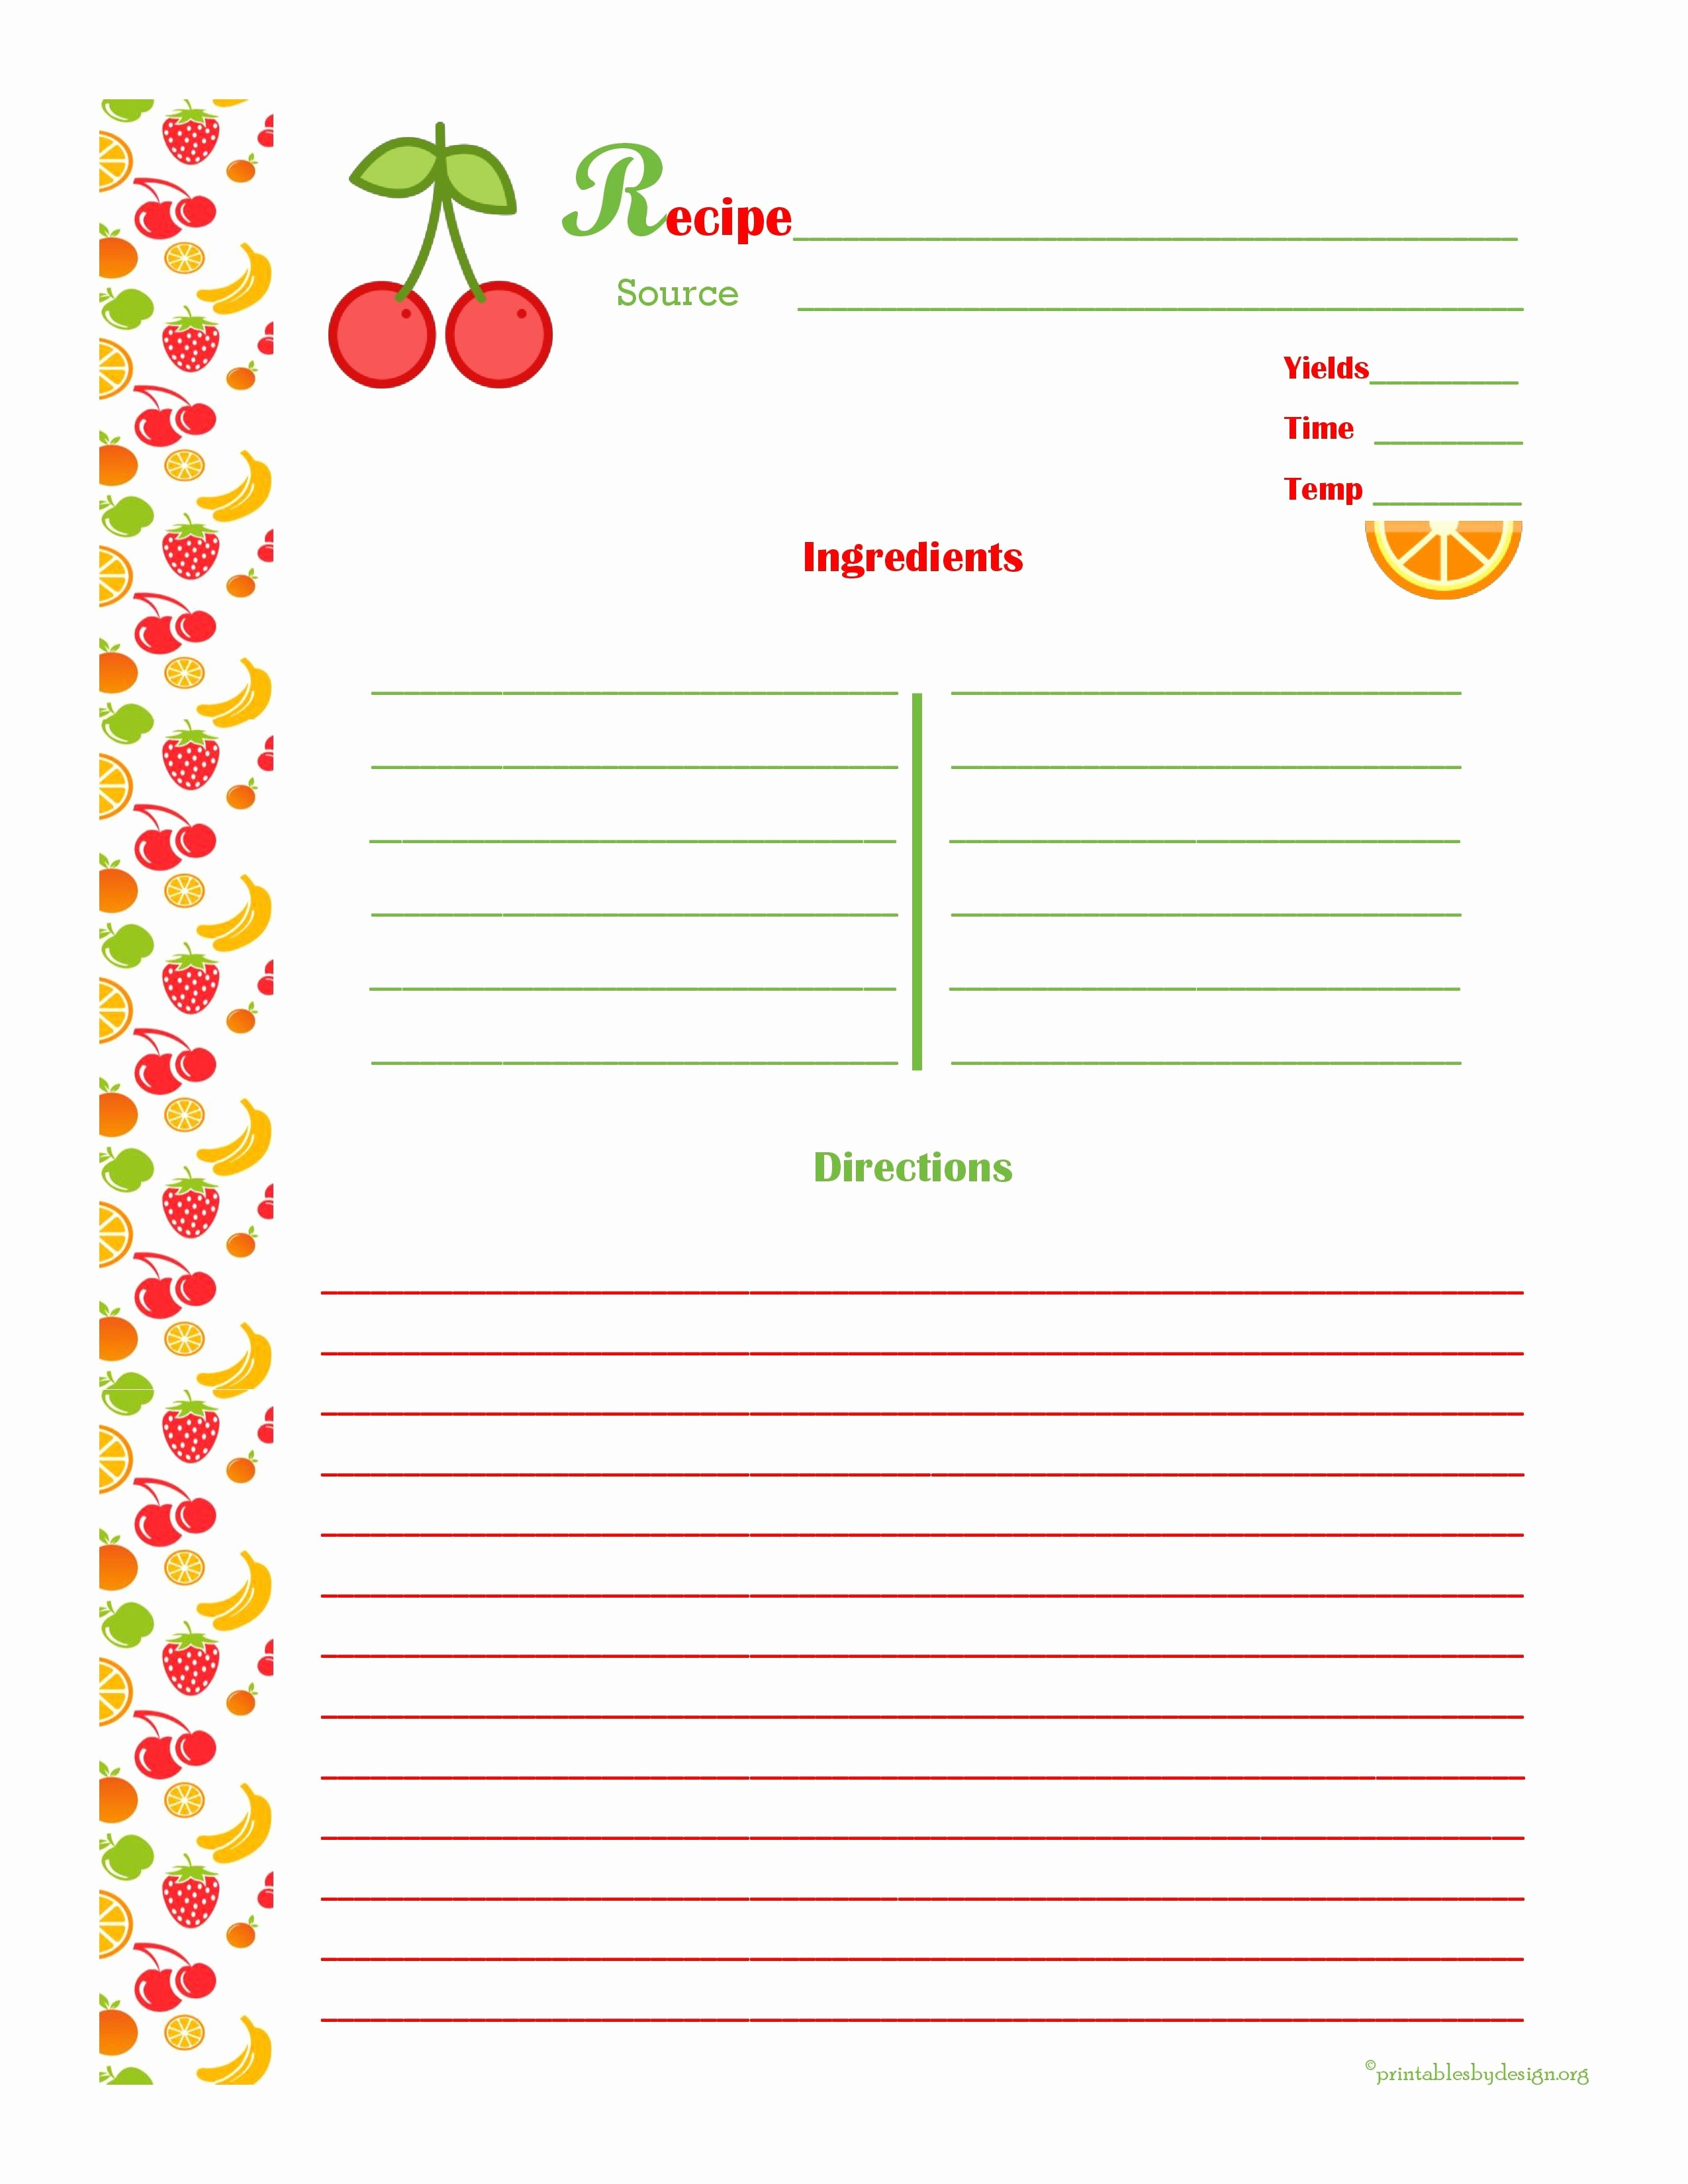 Template for Recipes Full Page Lovely Cherry & orange Recipe Card Full Page